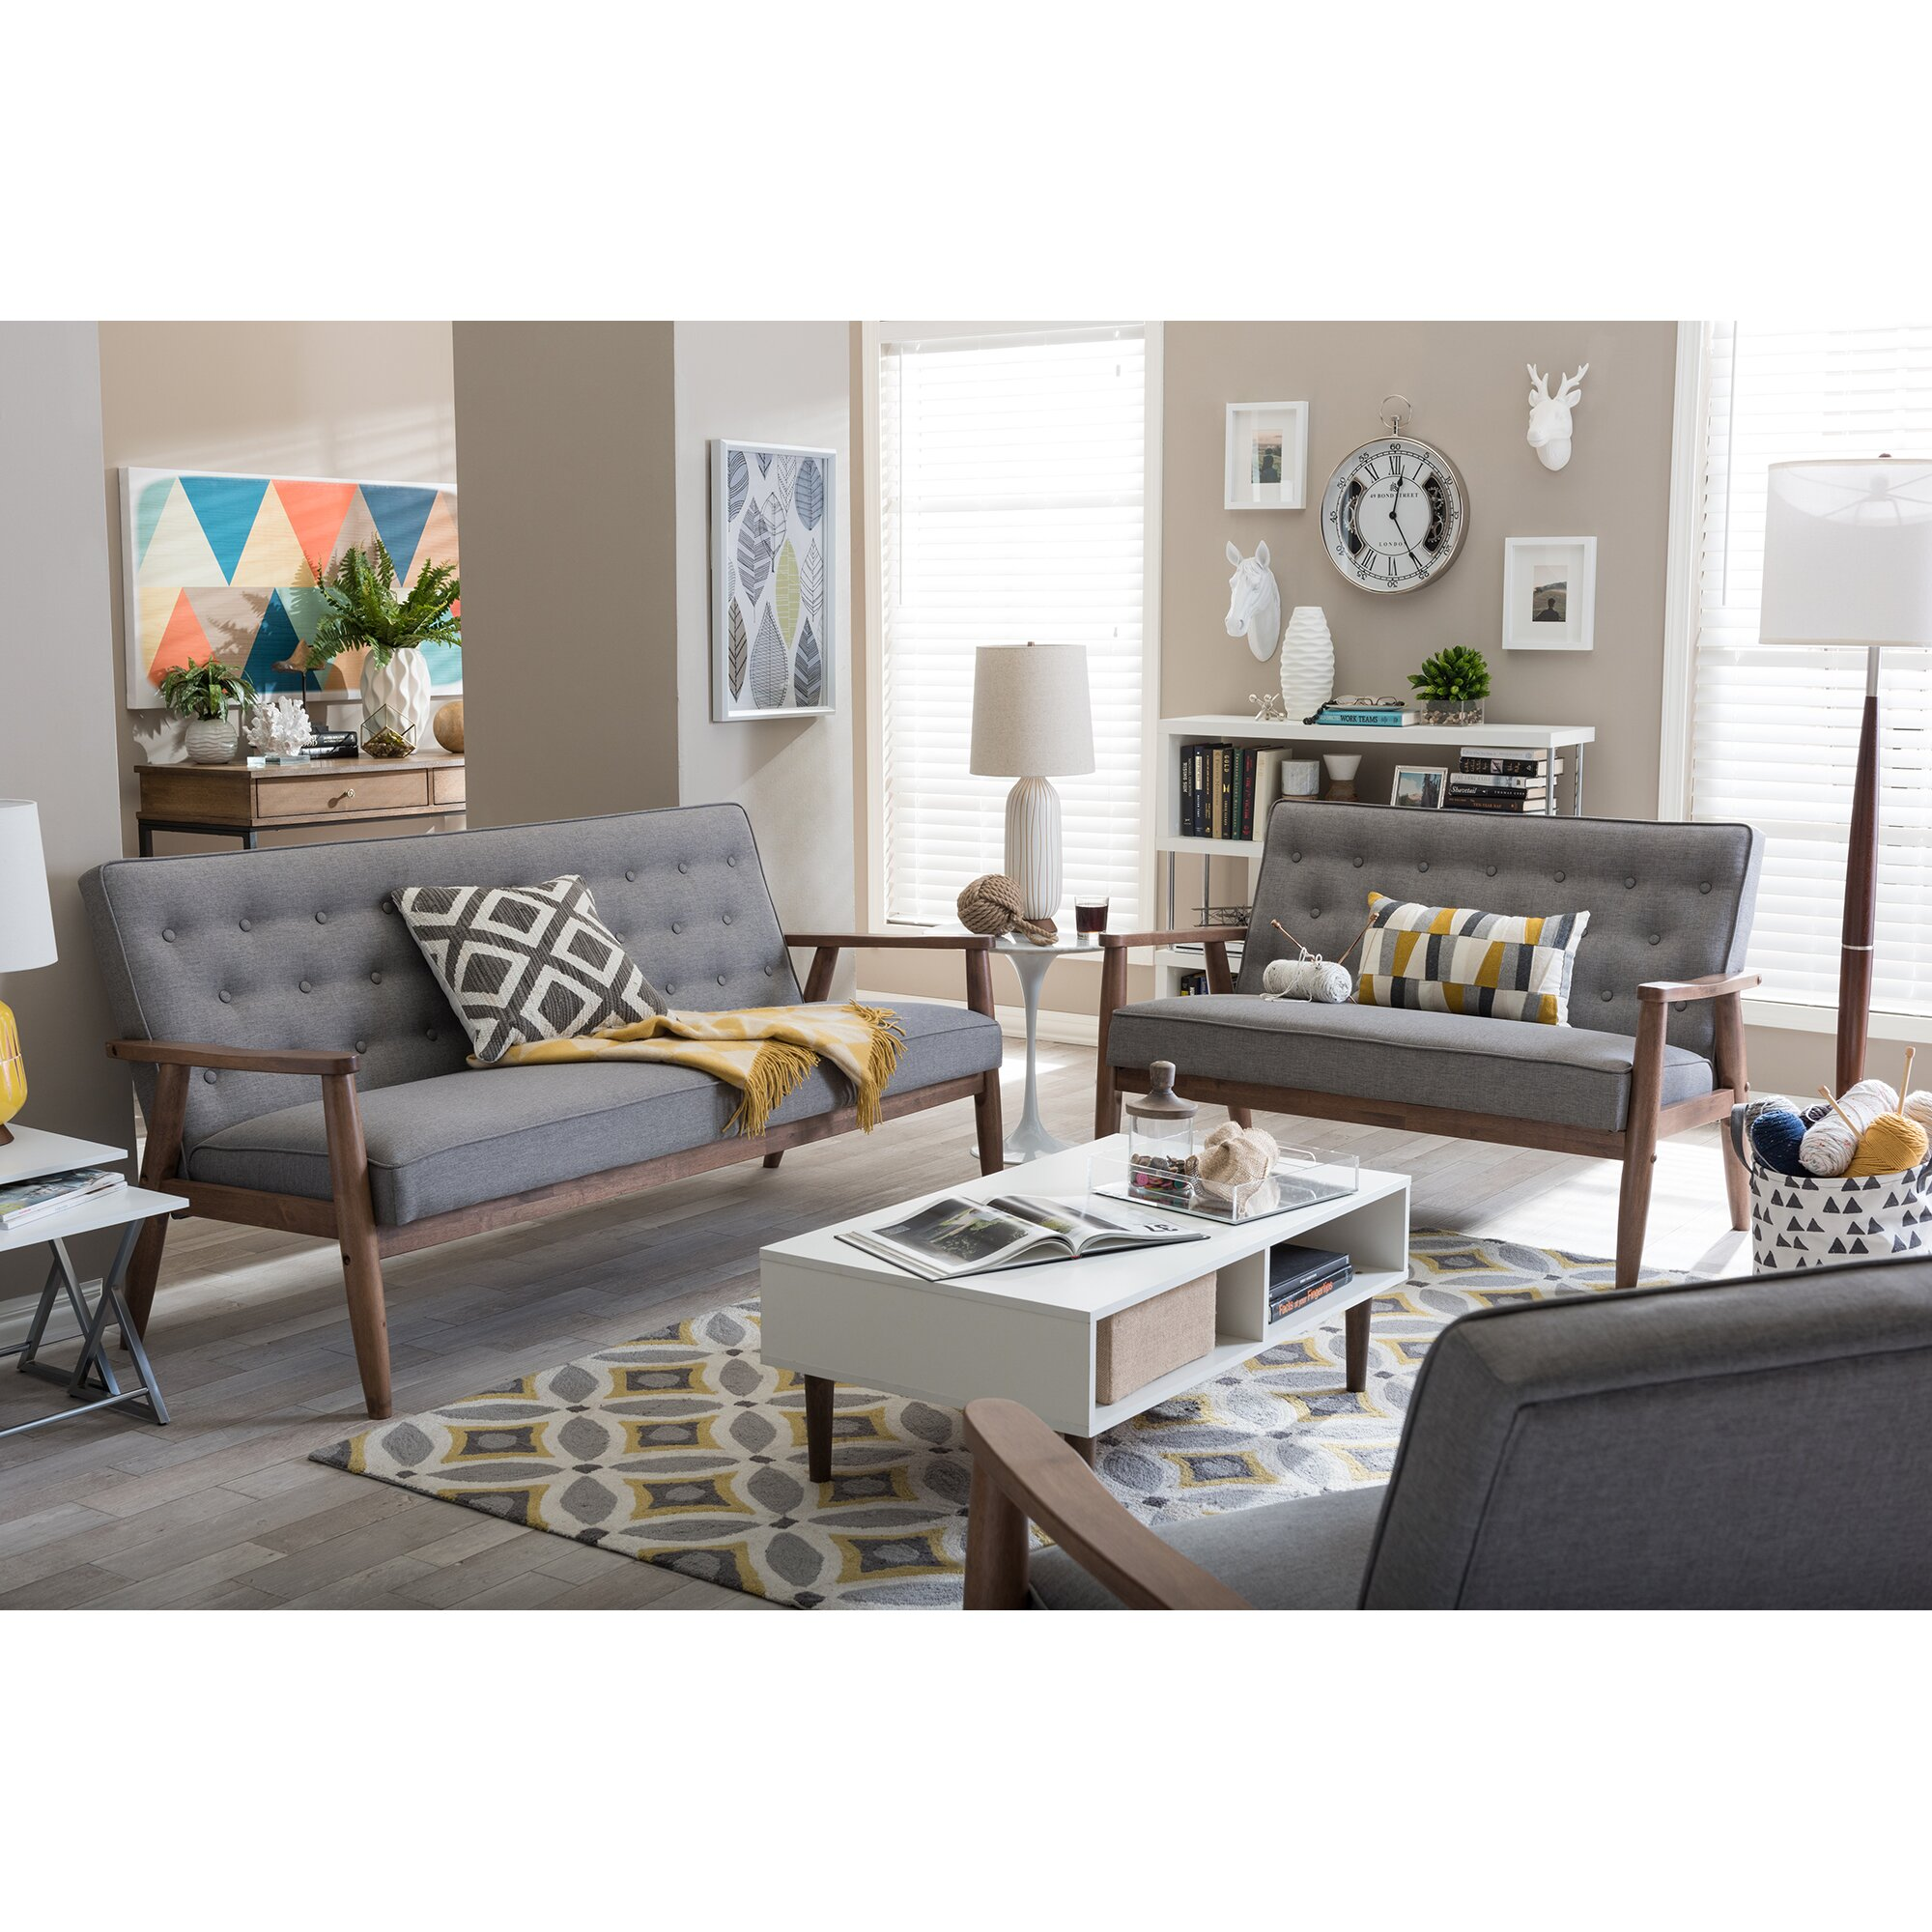 Wholesale Interiors Sorrento Baxton Studio Upholstered 3 Piece Living Room Set Reviews Wayfair